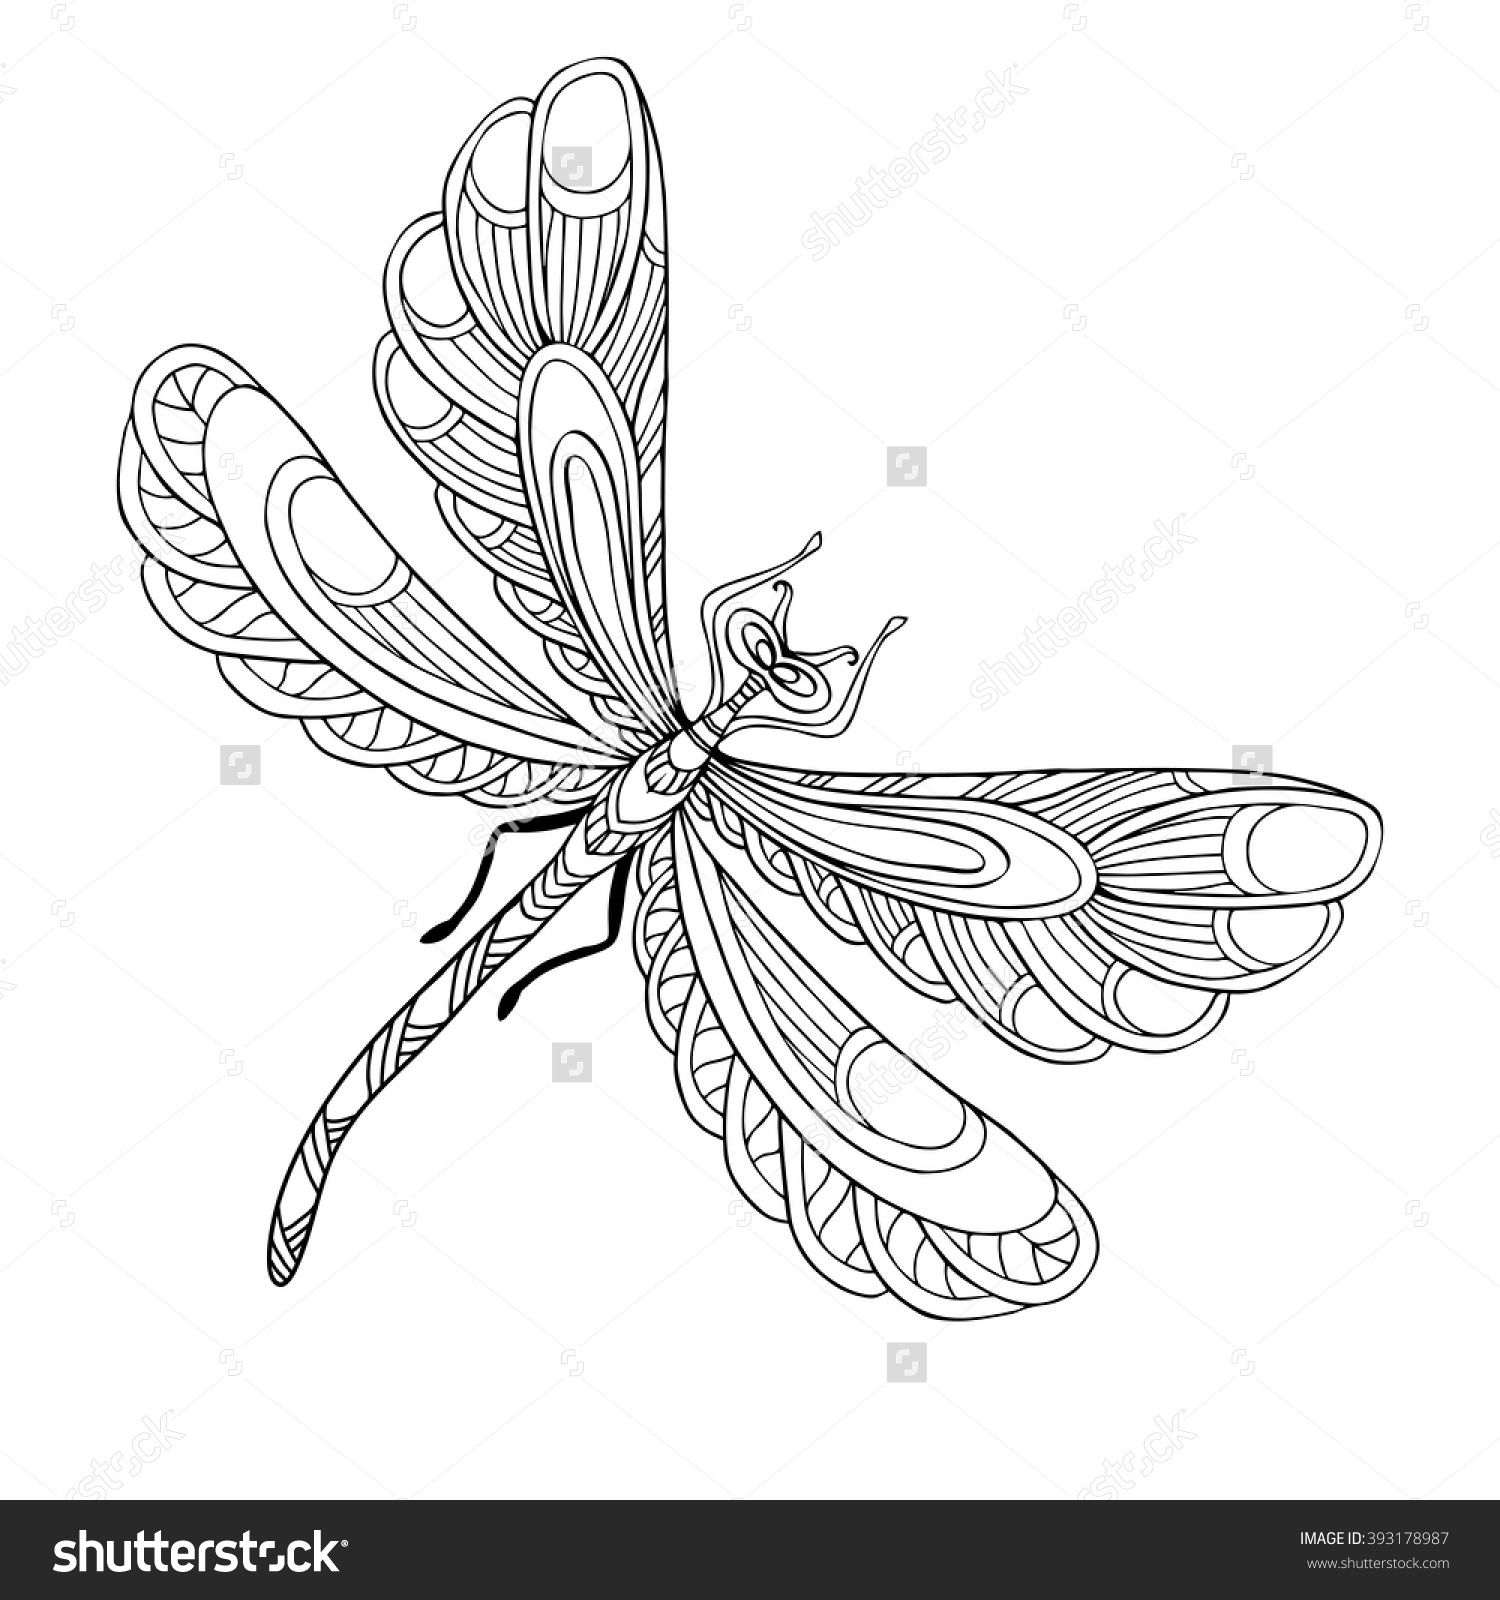 dragonflies coloring pages Adult Dragonfly Coloring Pages | Coloring Pages. | Coloring pages  dragonflies coloring pages